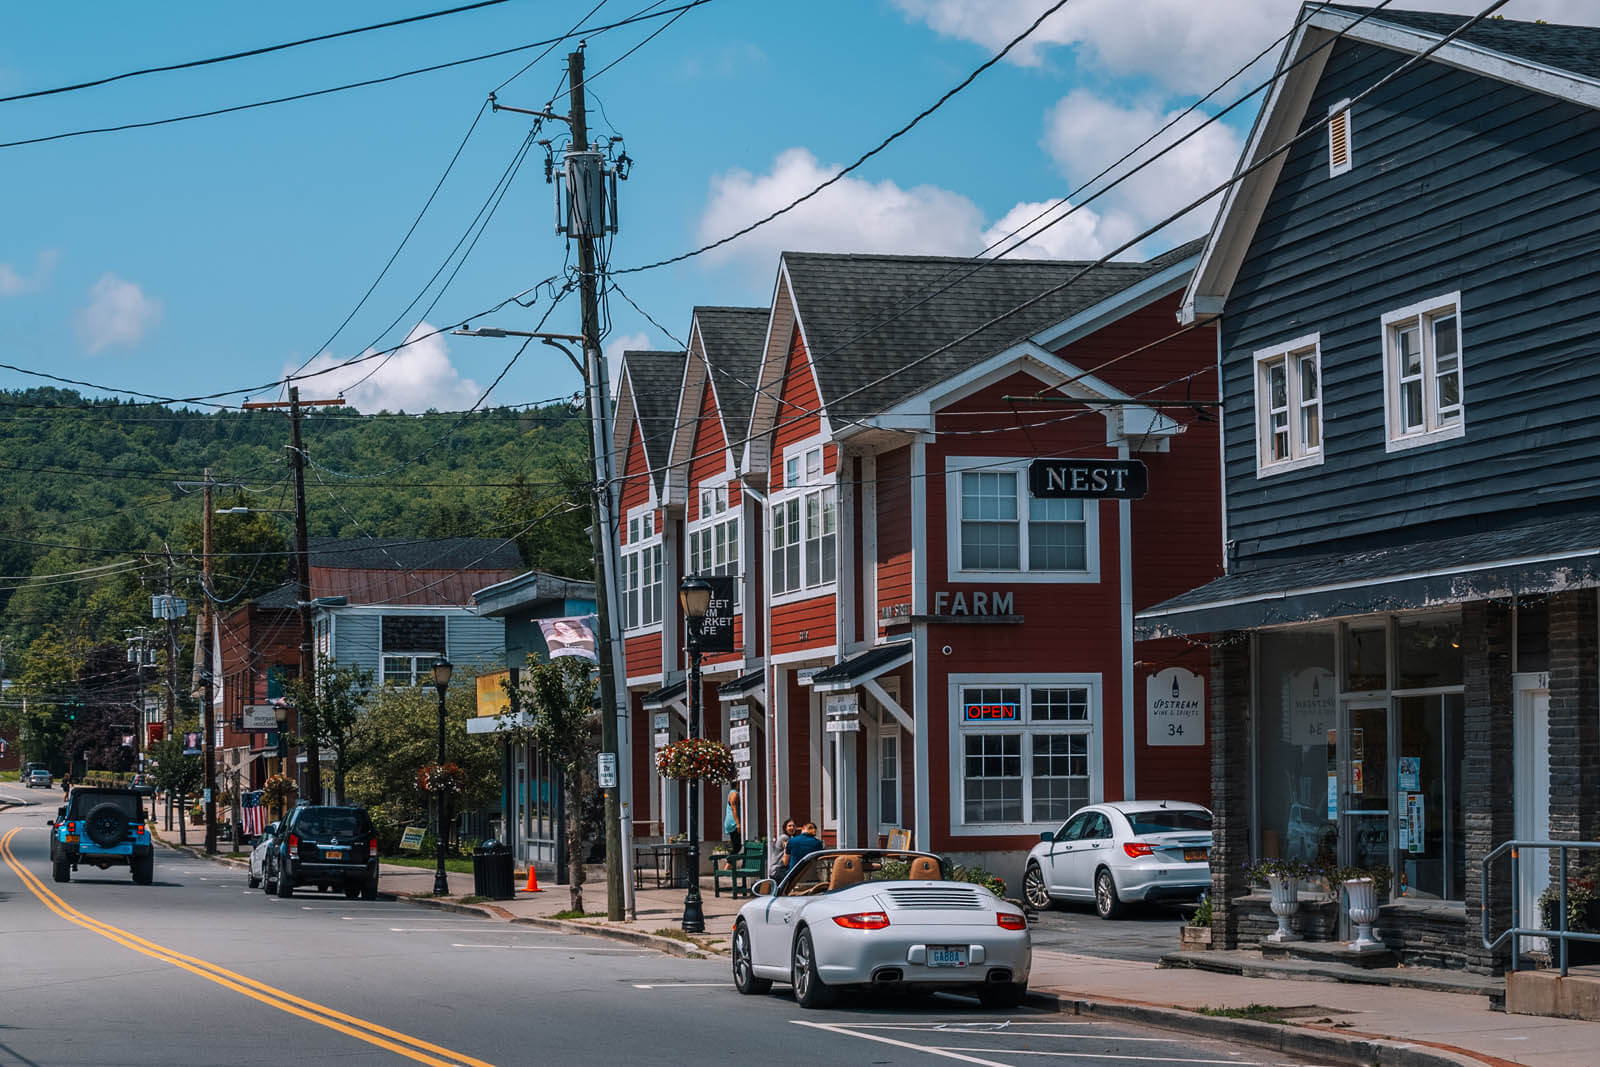 downtown Livingston Manor in the Catskills New York